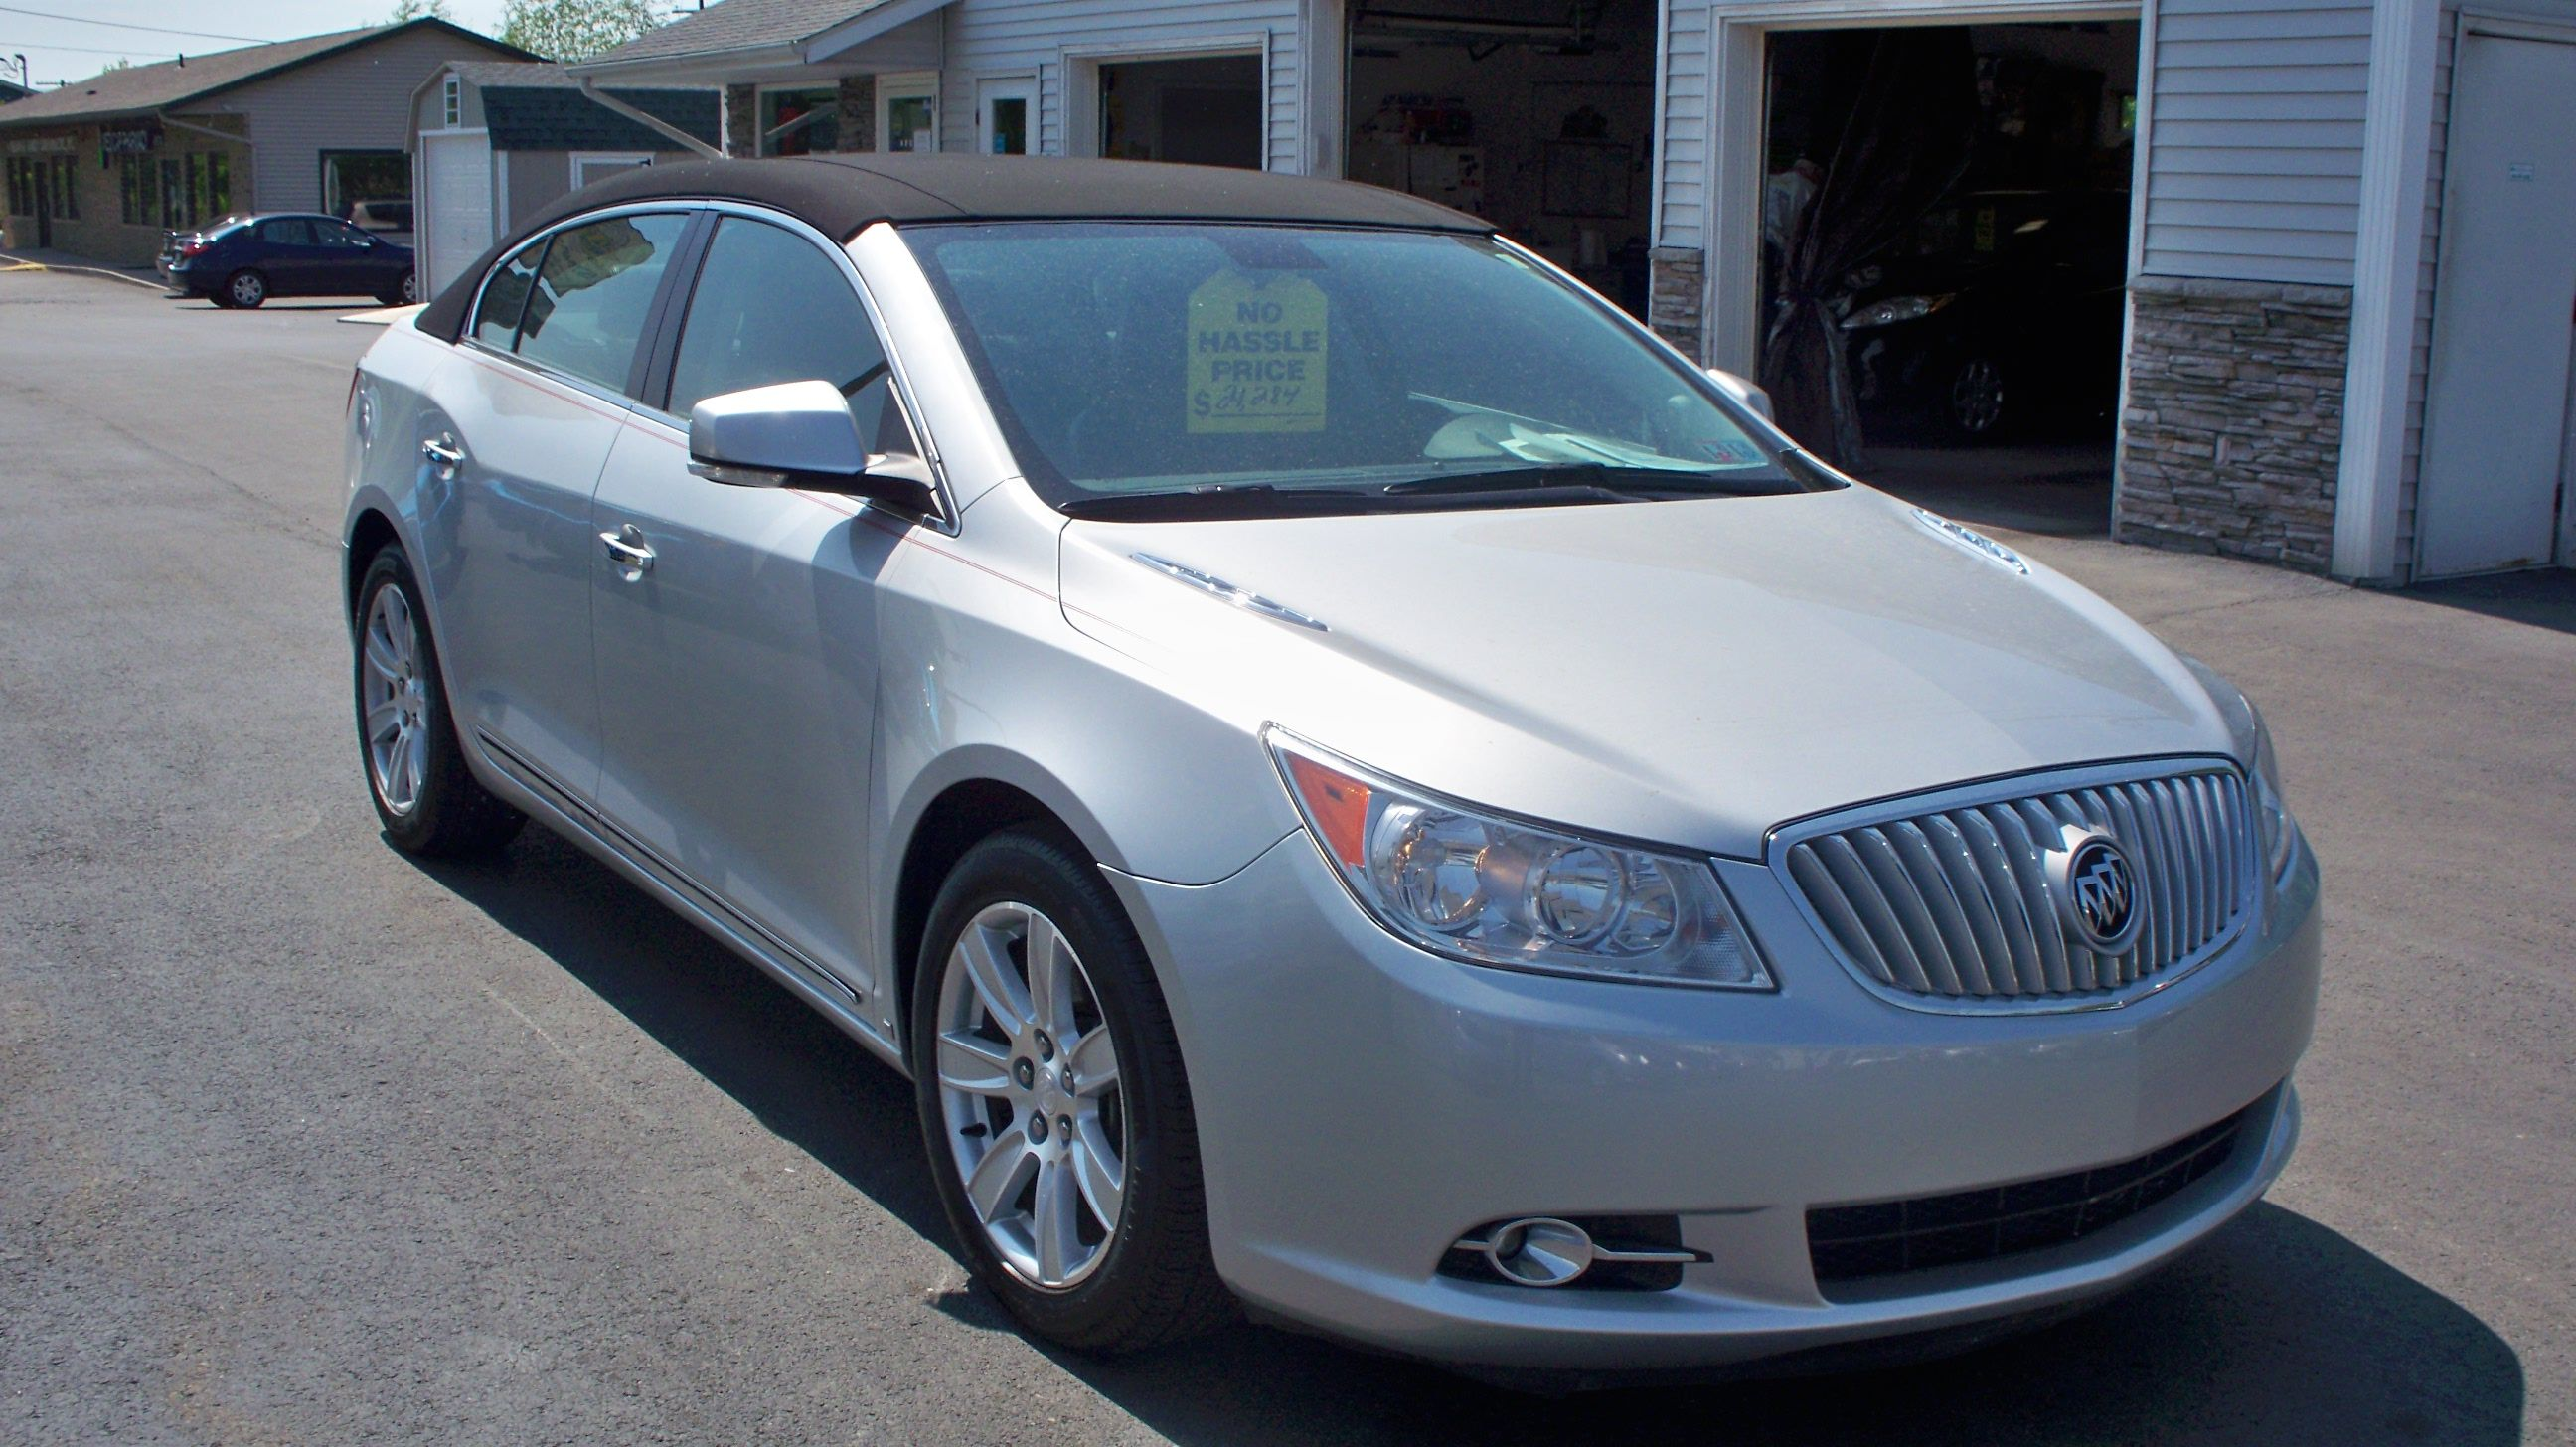 10 Buick Lacrosse Cxl Cars For Sale Used Cars Buick Lacrosse